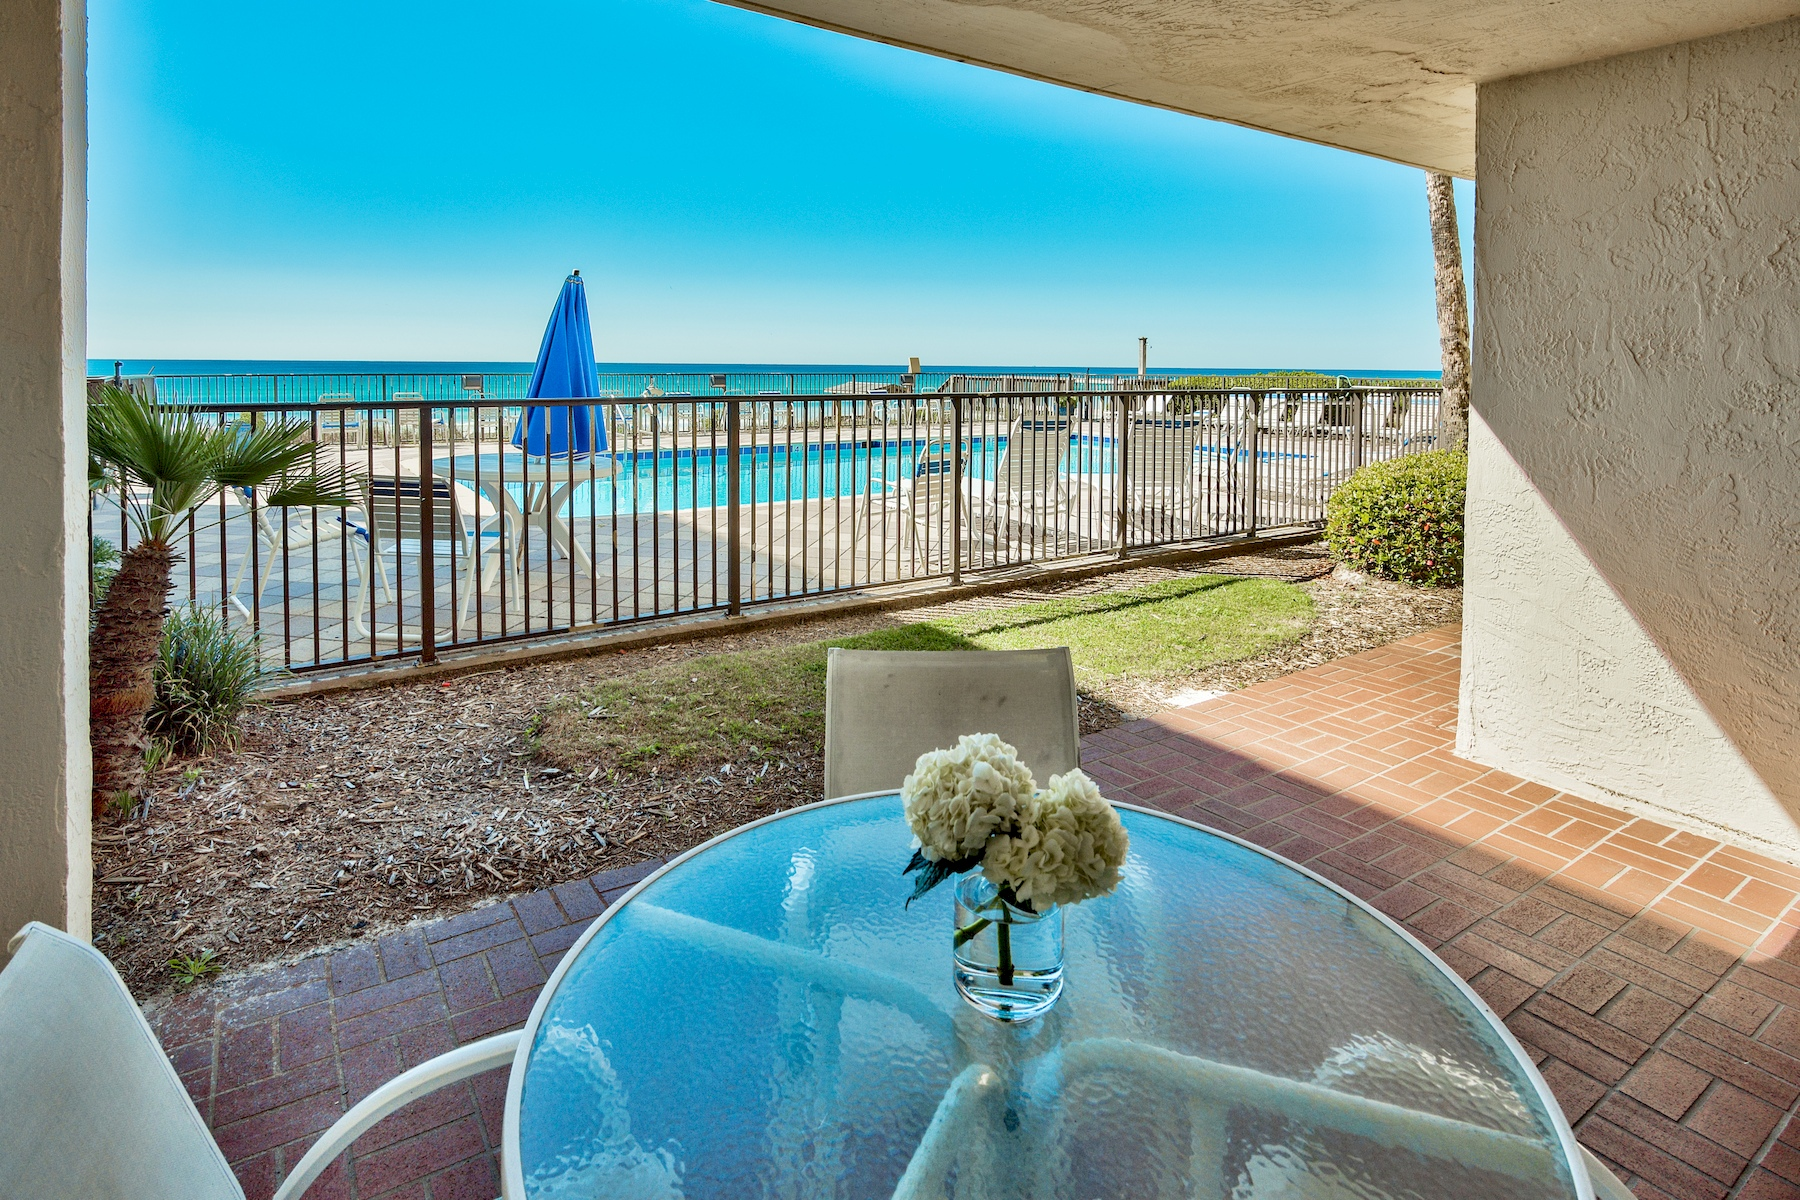 Кондоминиум для того Продажа на Beautifully Upgraded Condo in Popular Huntington By The Sea 140 Monaco Street 101, Miramar Beach, Флорида, 32550 Соединенные Штаты